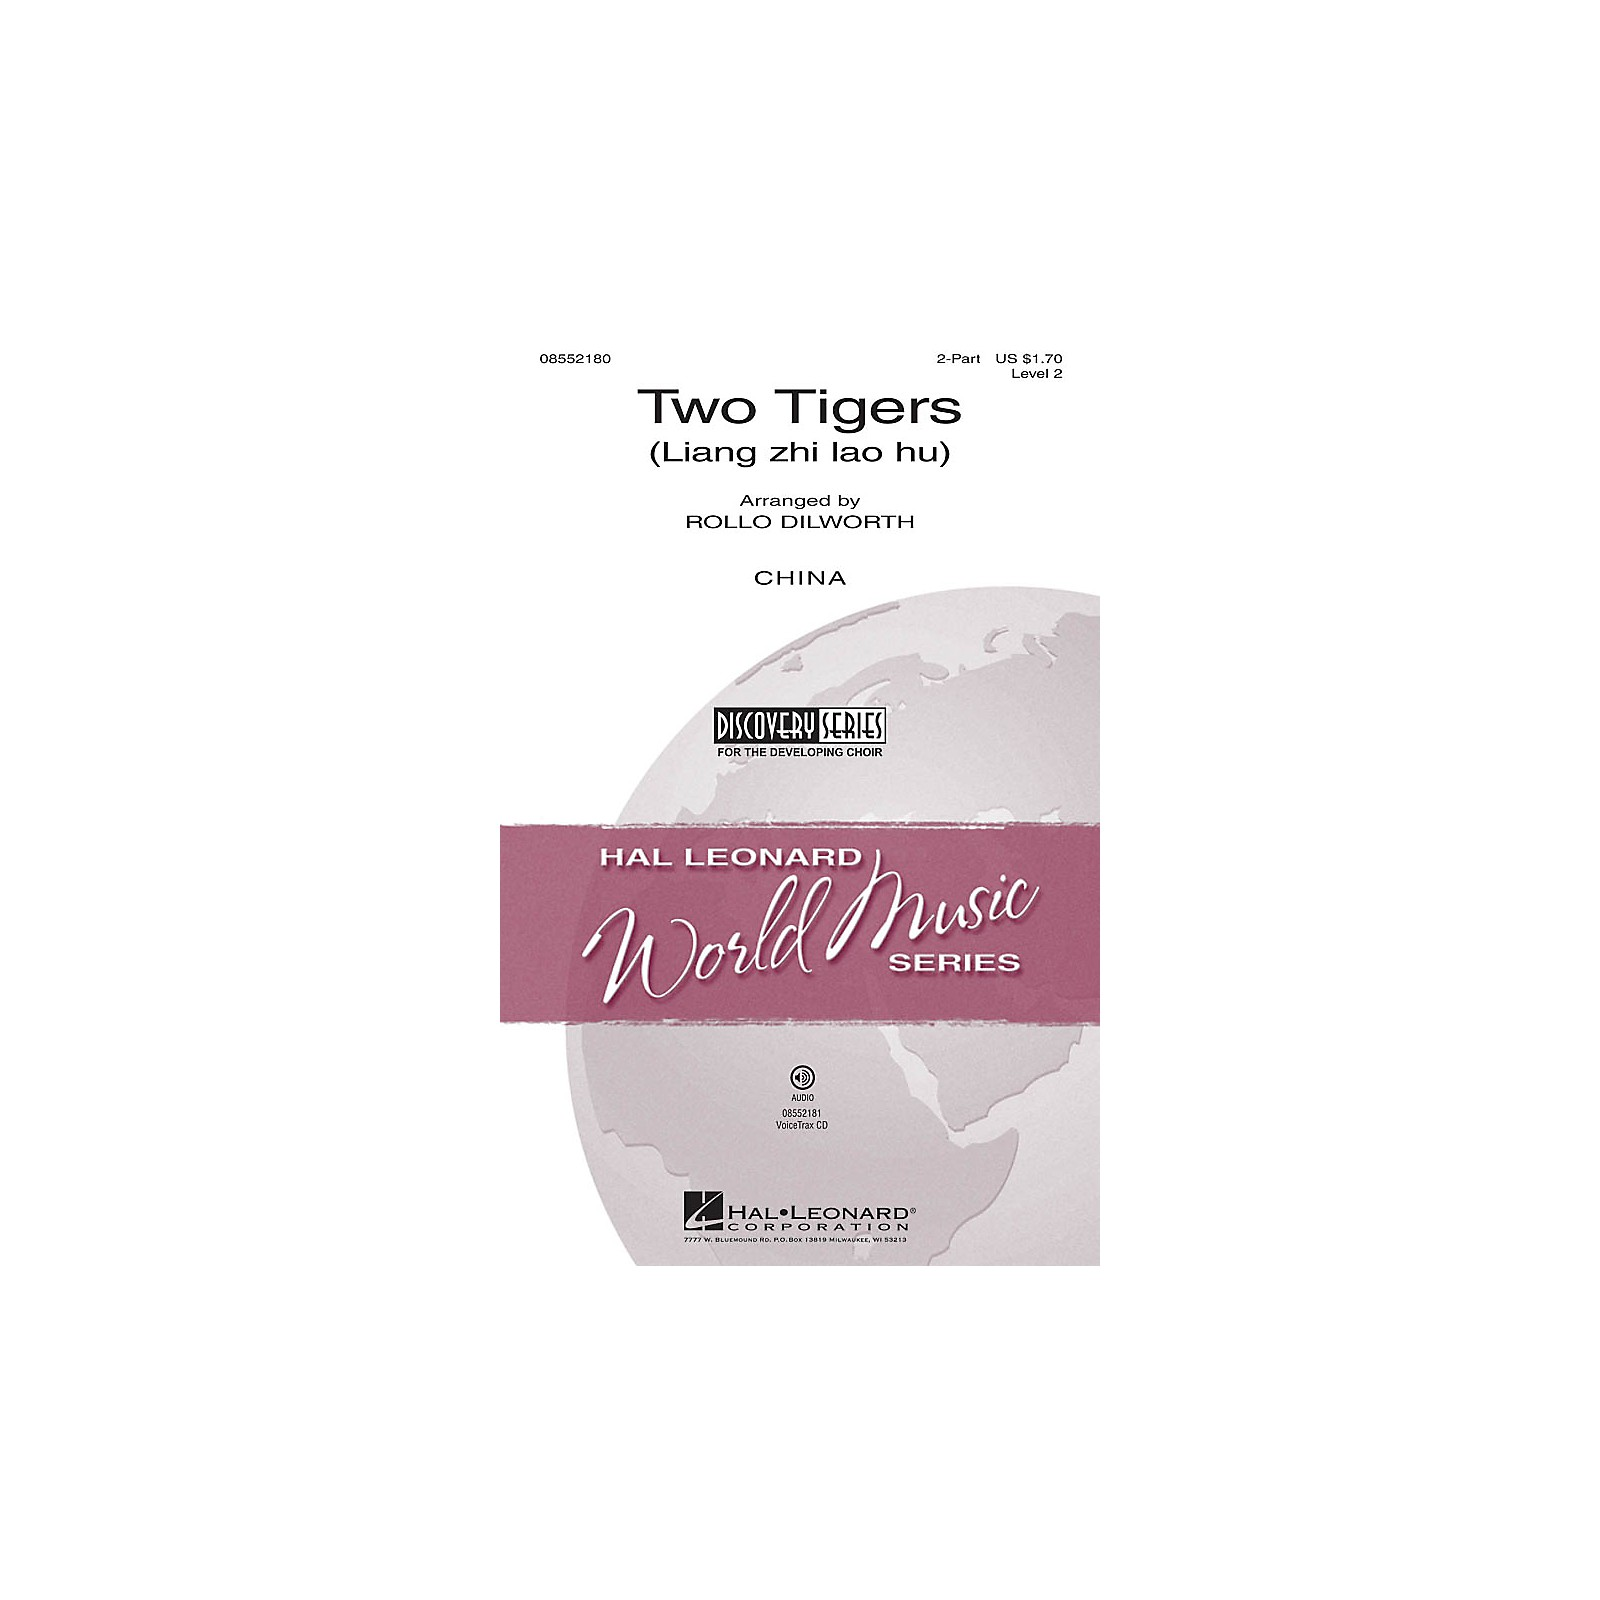 Hal Leonard Two Tigers (Liang zhi lao hu) Discovery Level 2 VoiceTrax CD Arranged by Rollo Dilworth